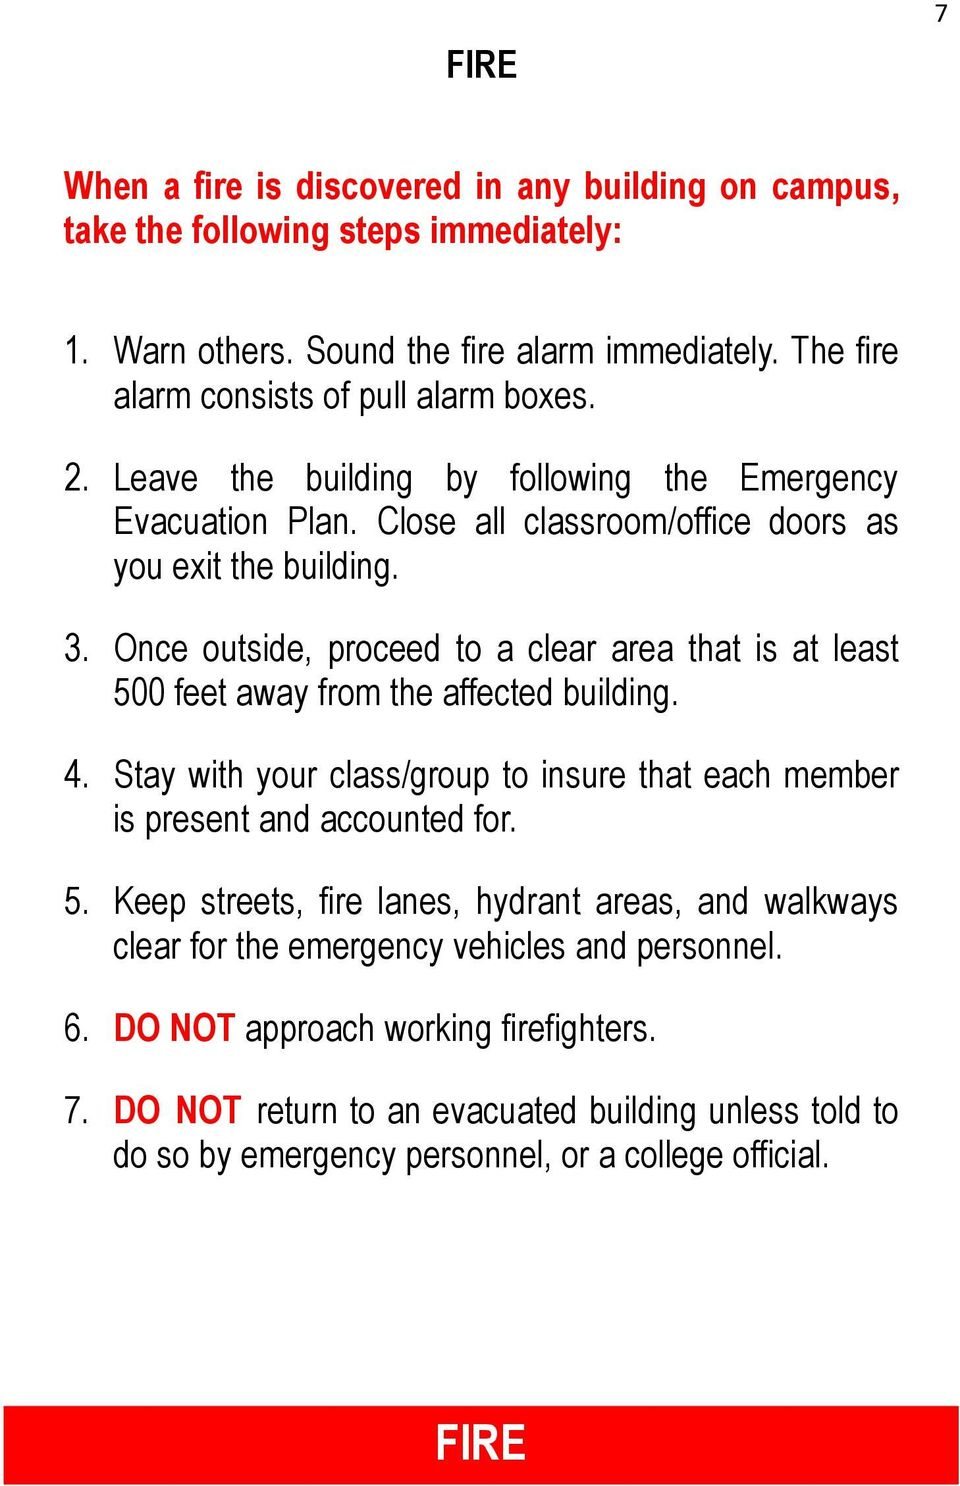 Once outside, proceed to a clear area that is at least 500 feet away from the affected building. 4. Stay with your class/group to insure that each member is present and accounted for. 5. Keep streets, fire lanes, hydrant areas, and walkways clear for the emergency vehicles and personnel.